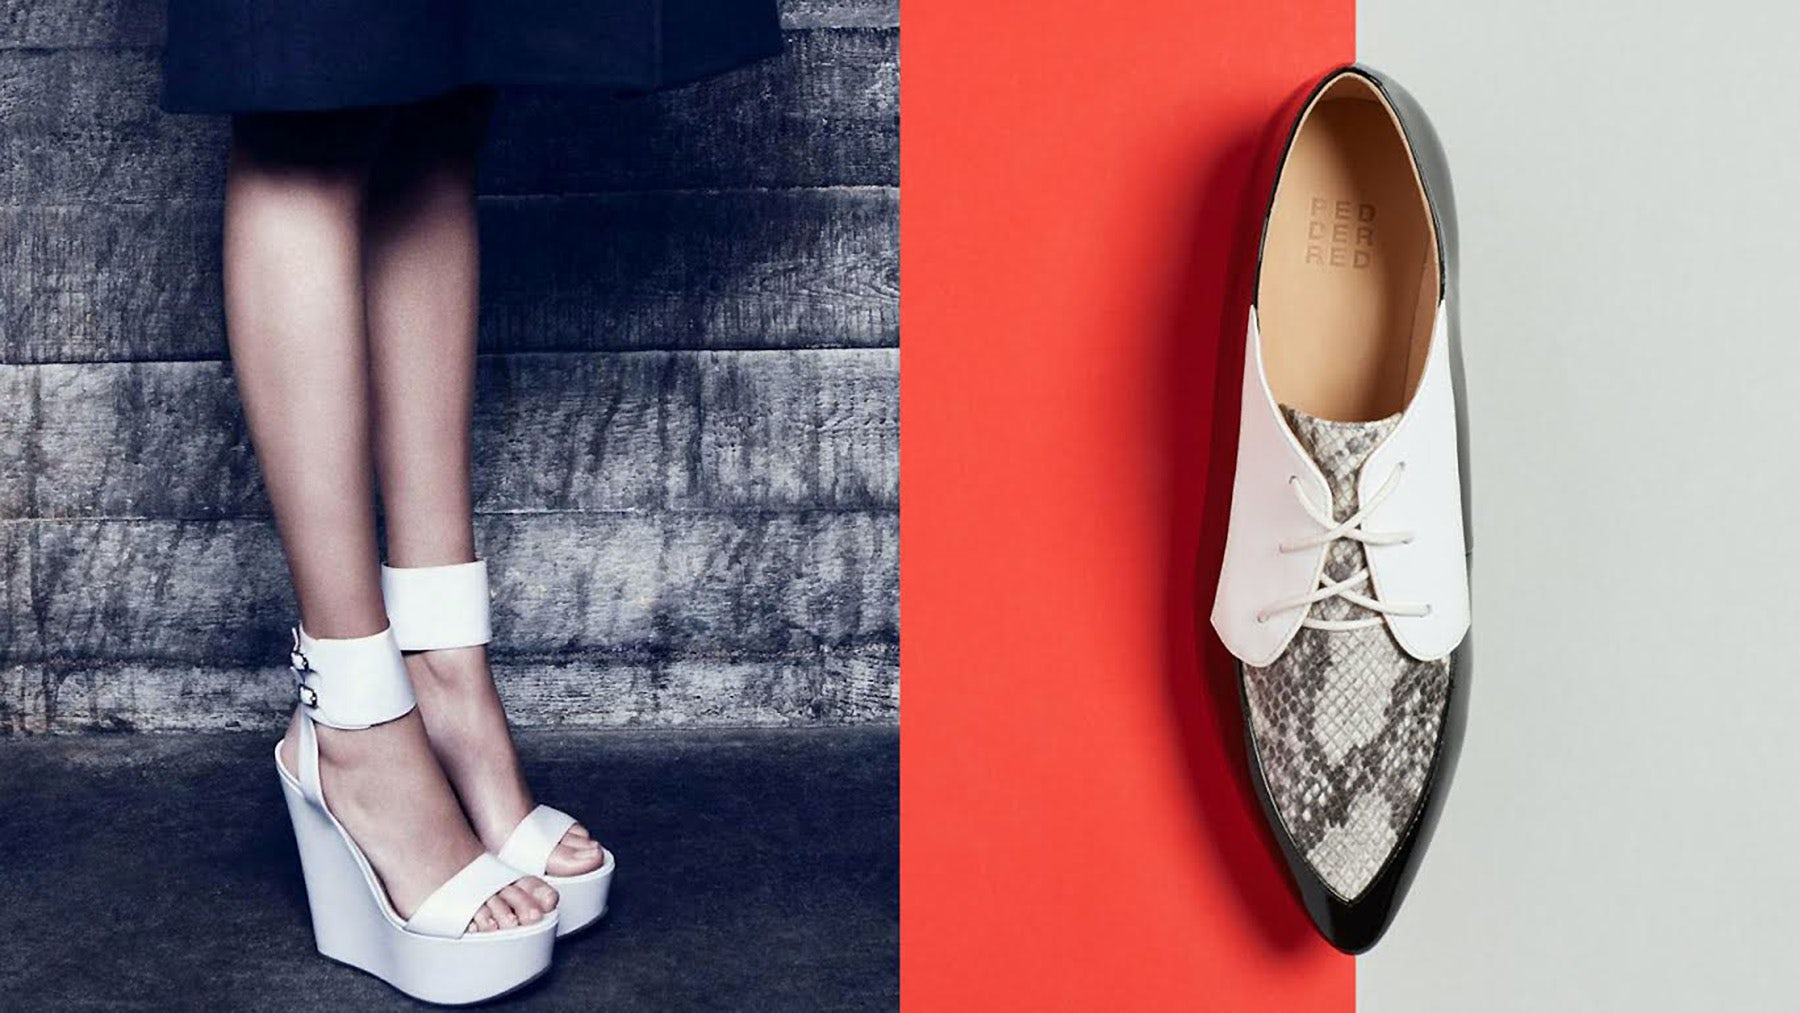 Pedder Group, Kurt Geiger Tapping Asia Footwear Growth